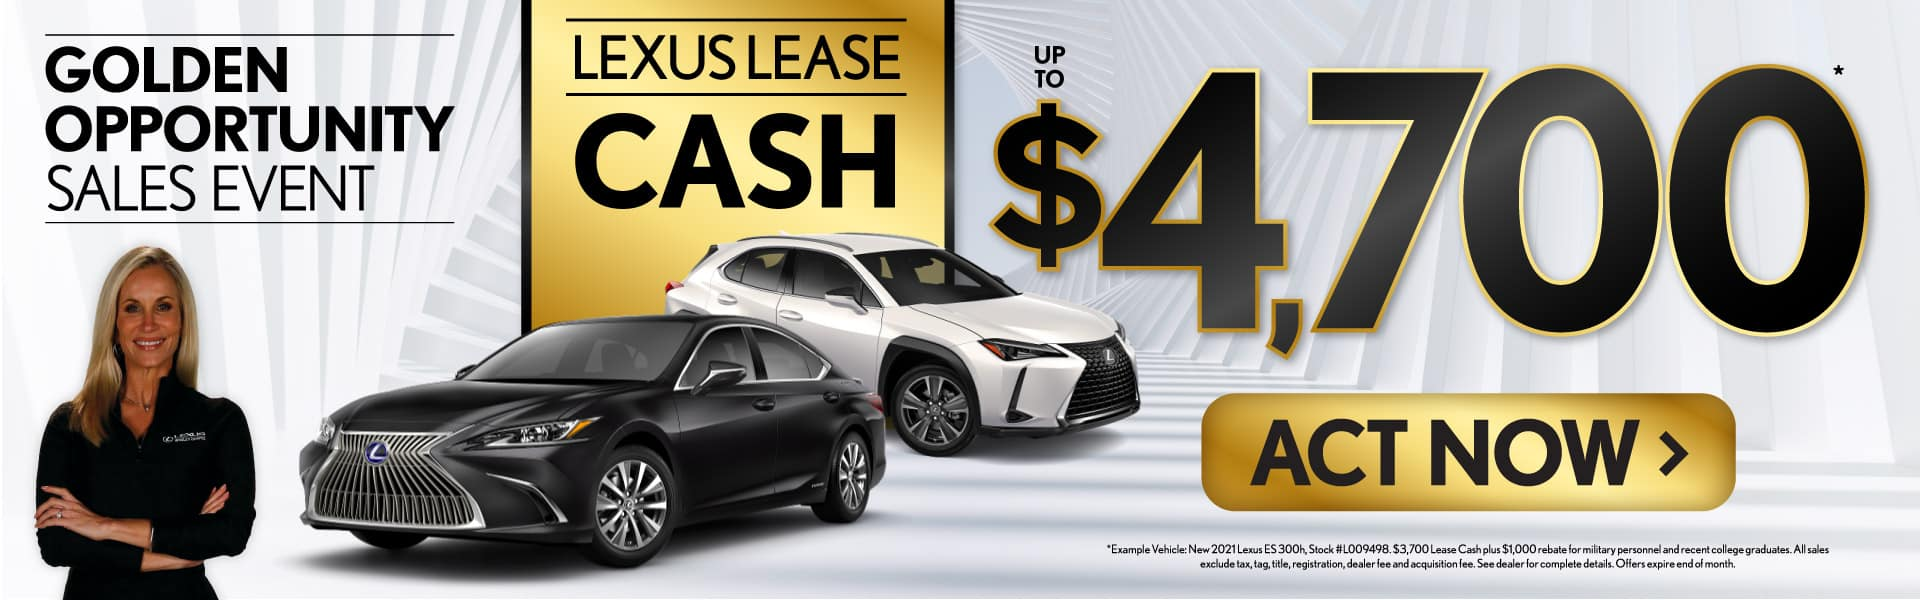 Lexus Lease Cash up to $4,700 - ACT NOW